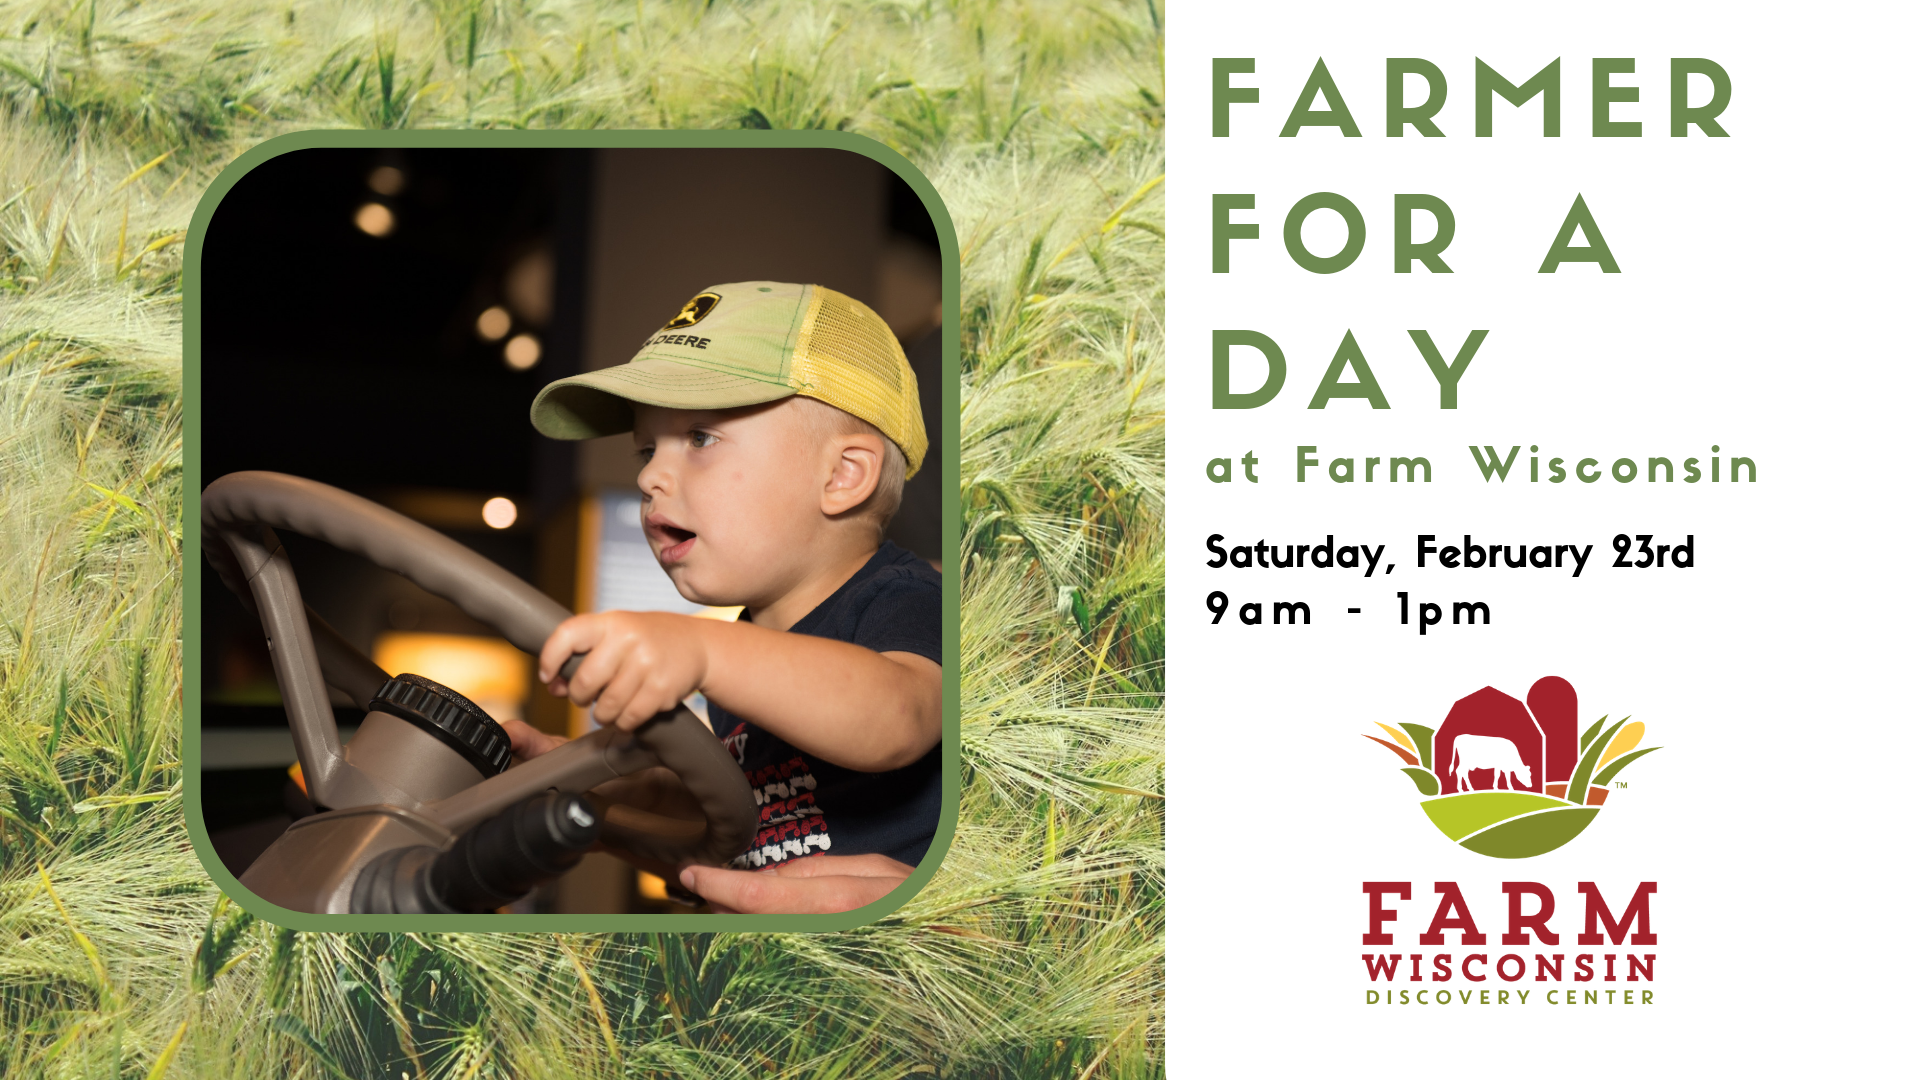 Farmer for a Day at Farm Wisconsin